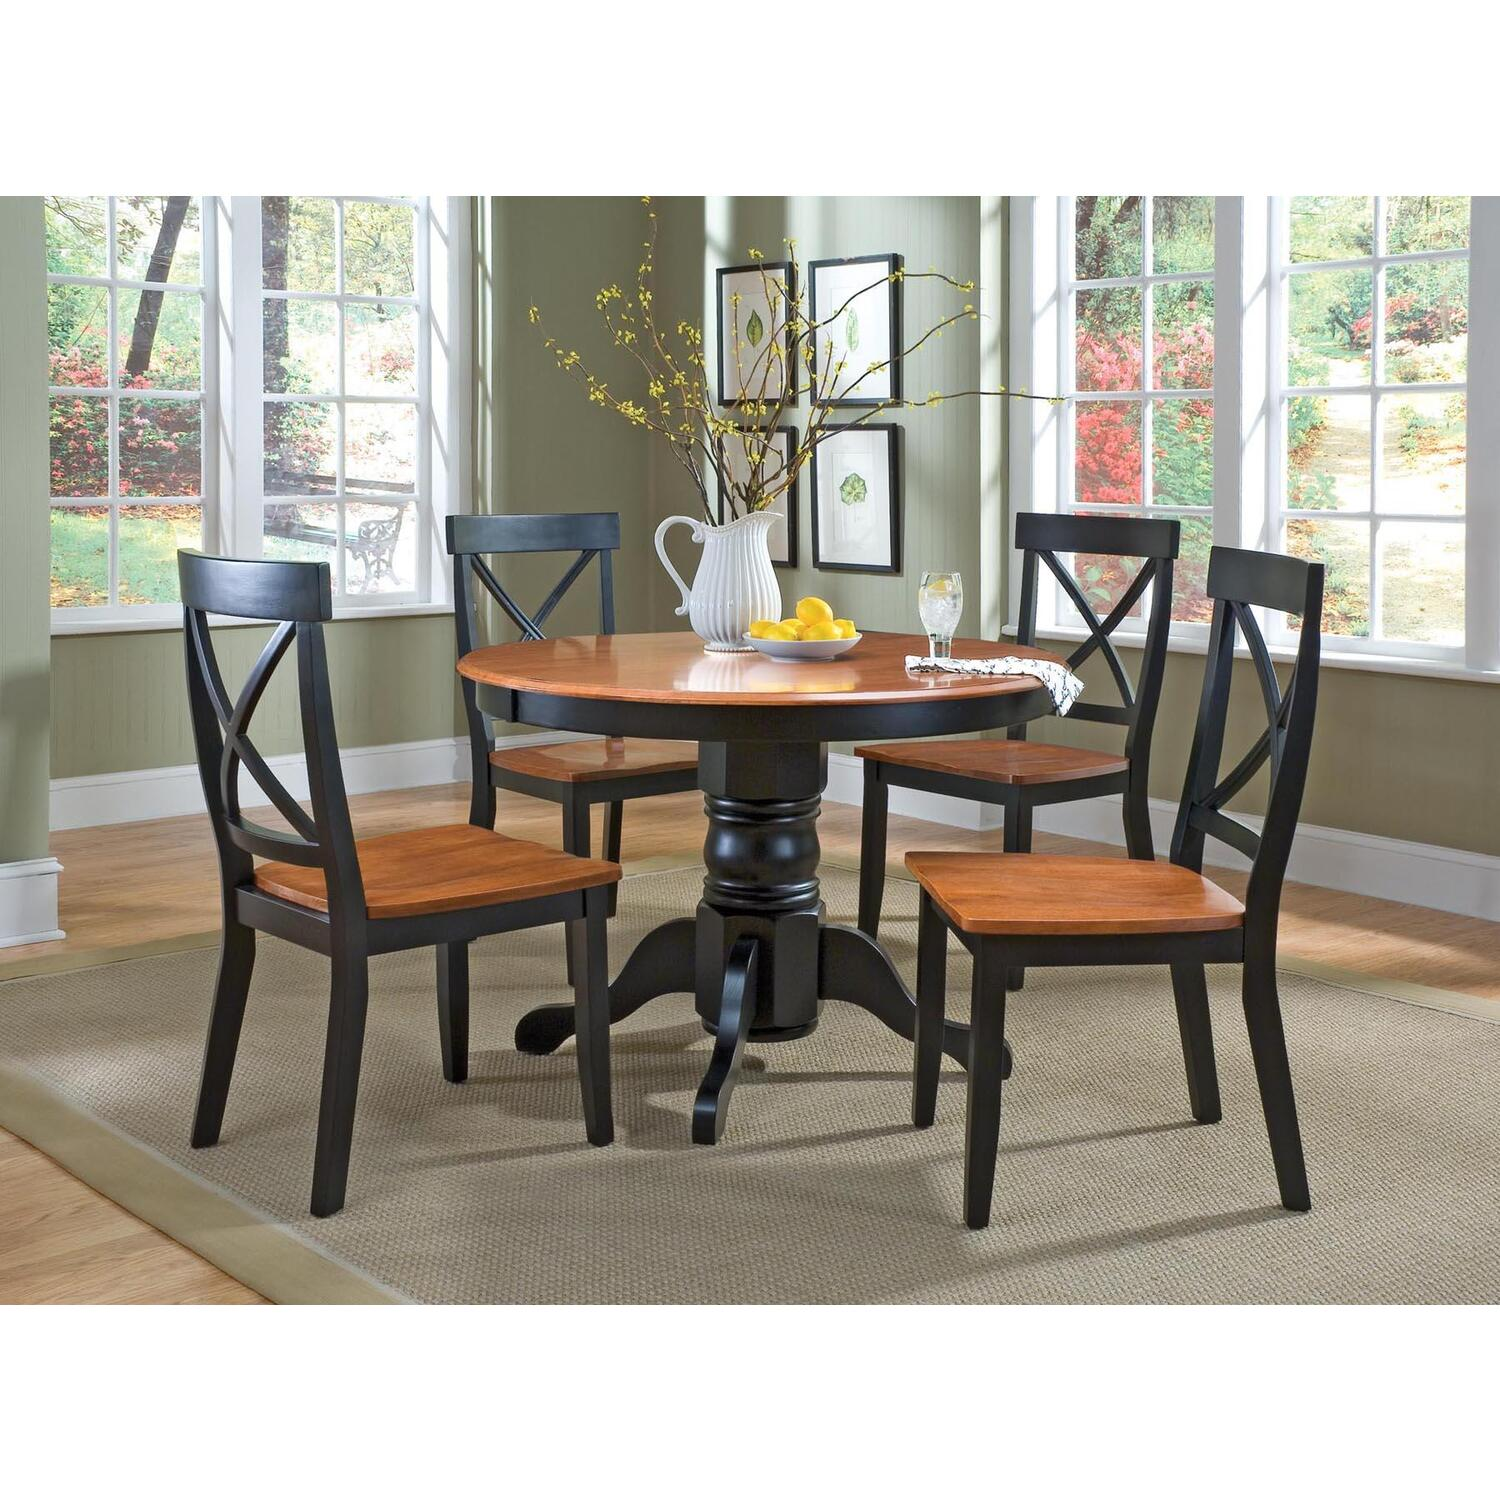 large round oak dining table 8 chairs adult saucer chair furniture, home goods, appliances, athletic gear, fitness, toys, baby products, musical ...